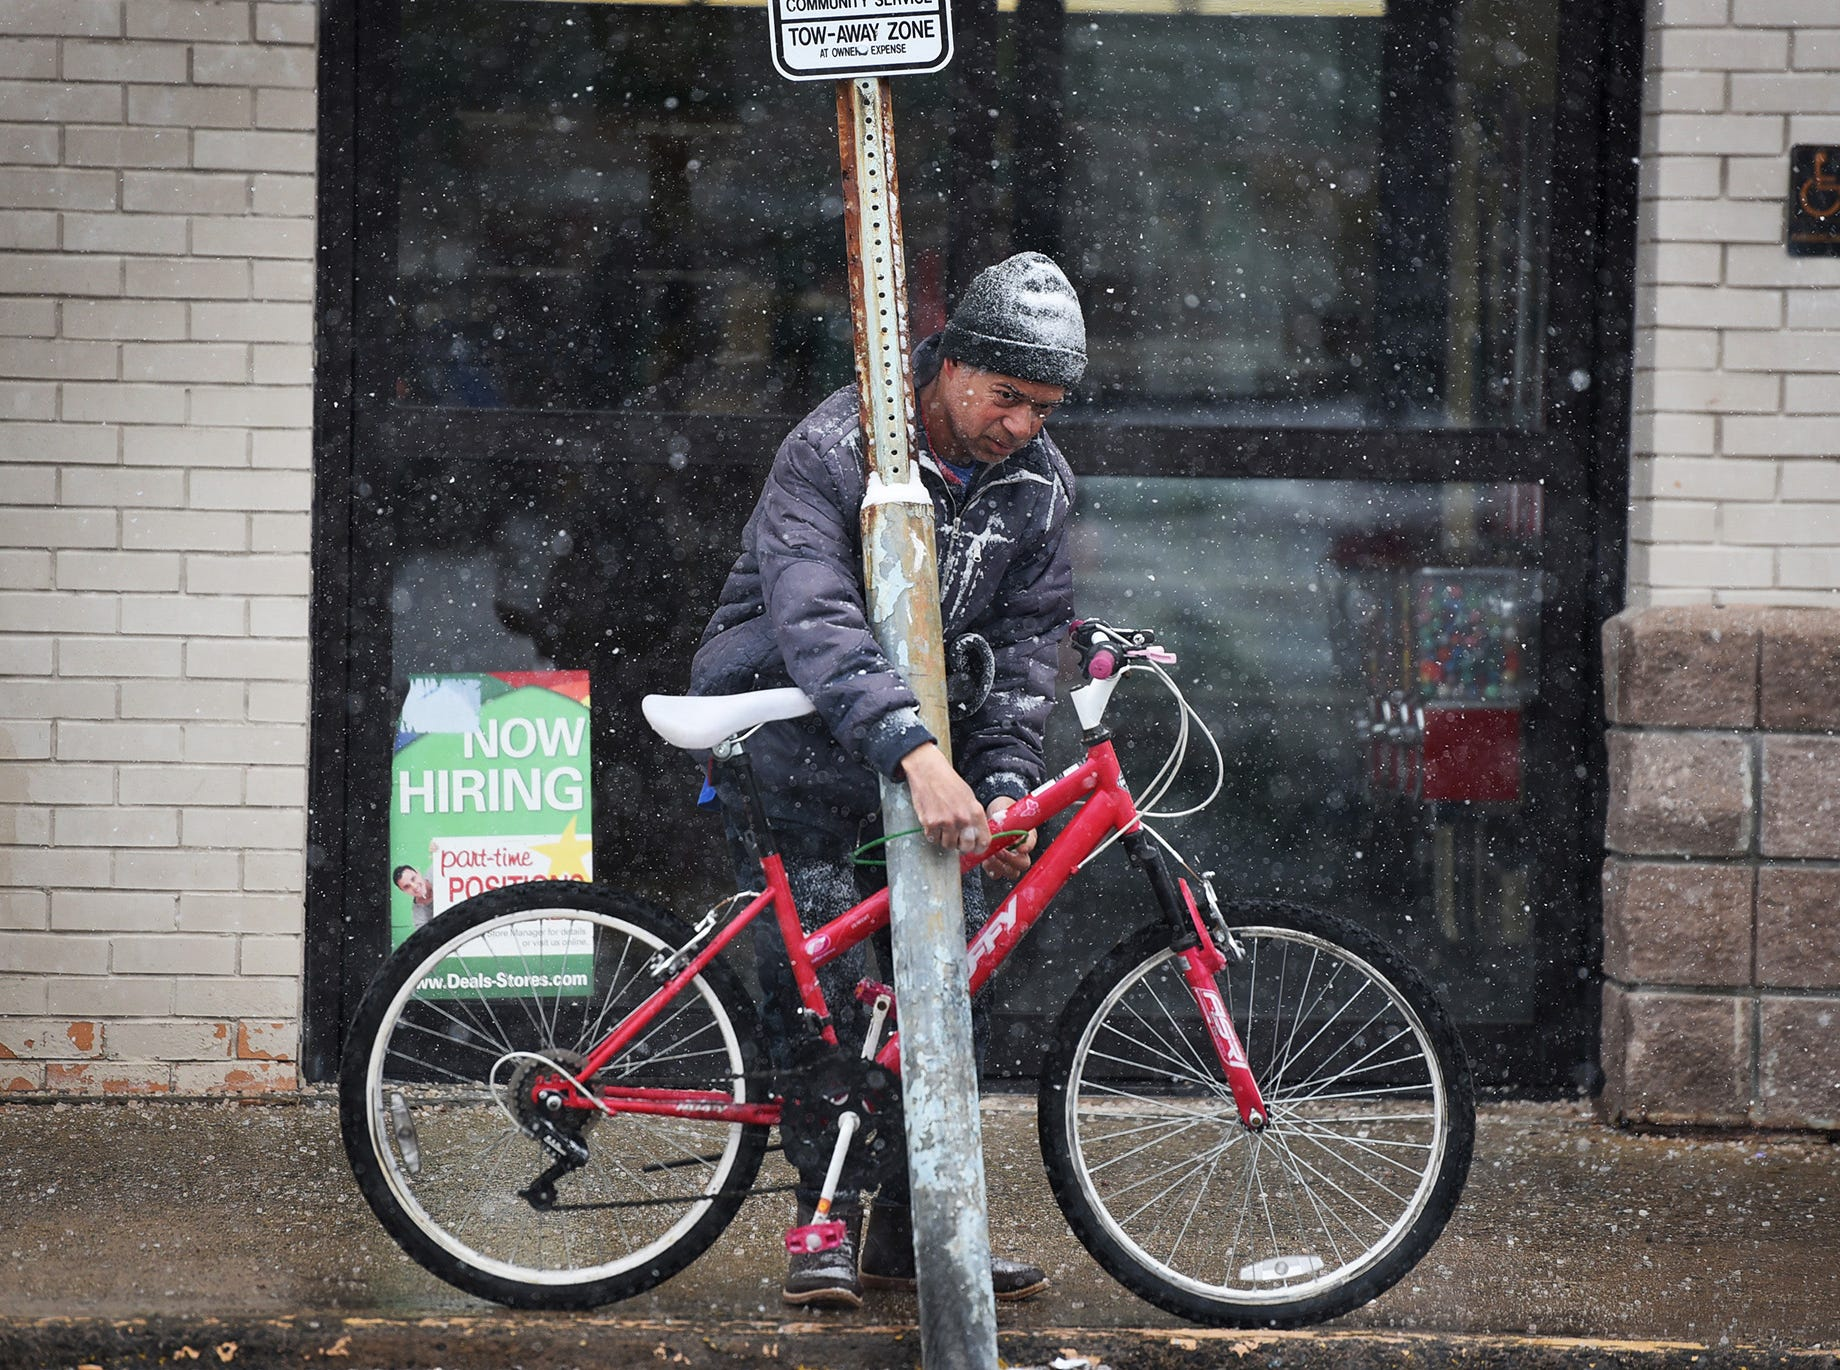 A man locks his bike as the snow falls in Fair Lawn on 02/20/19.